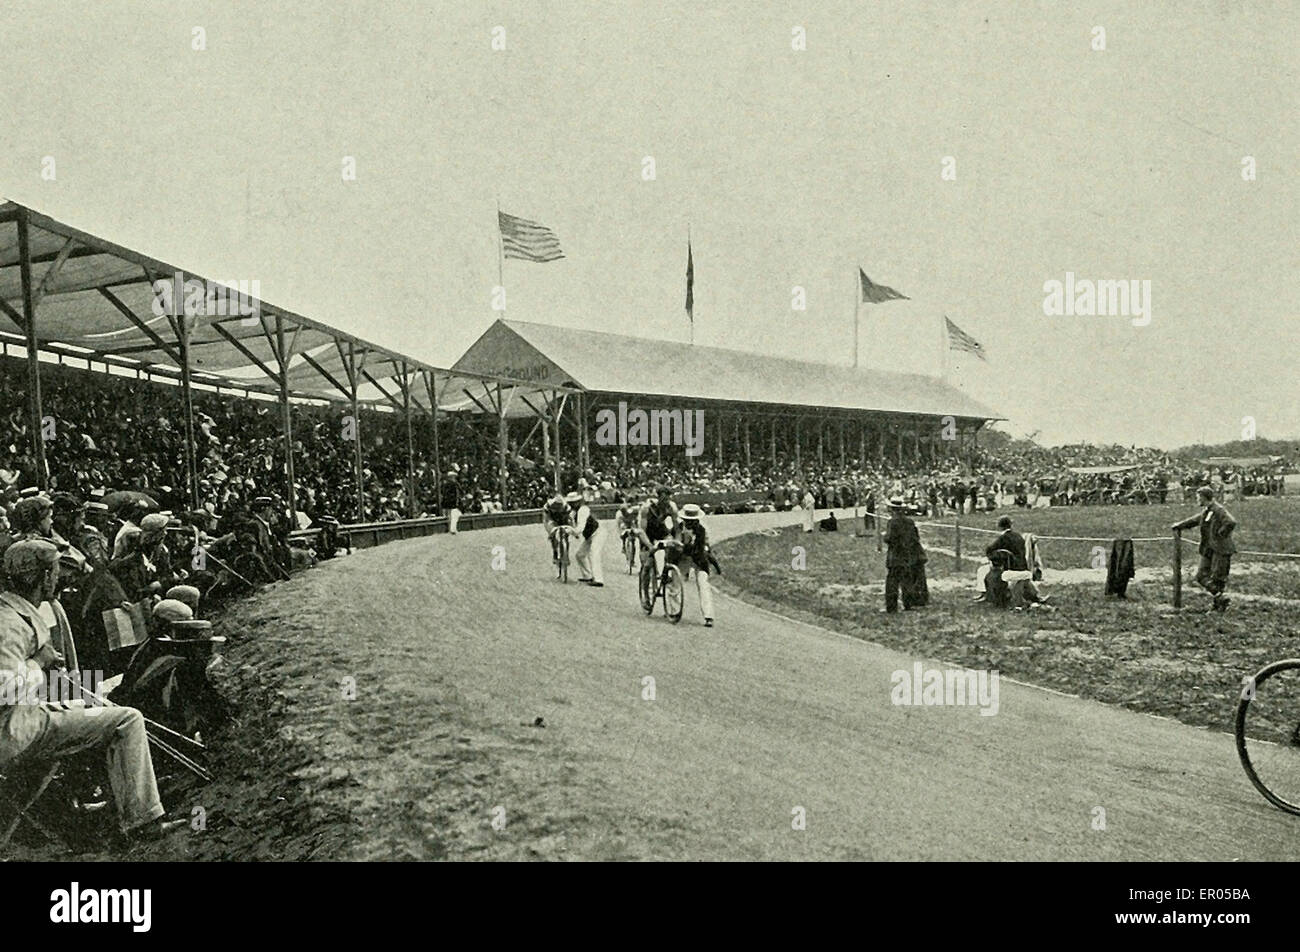 The Athletic Grounds - Asbury Park, NJ 1902 - Stock Image